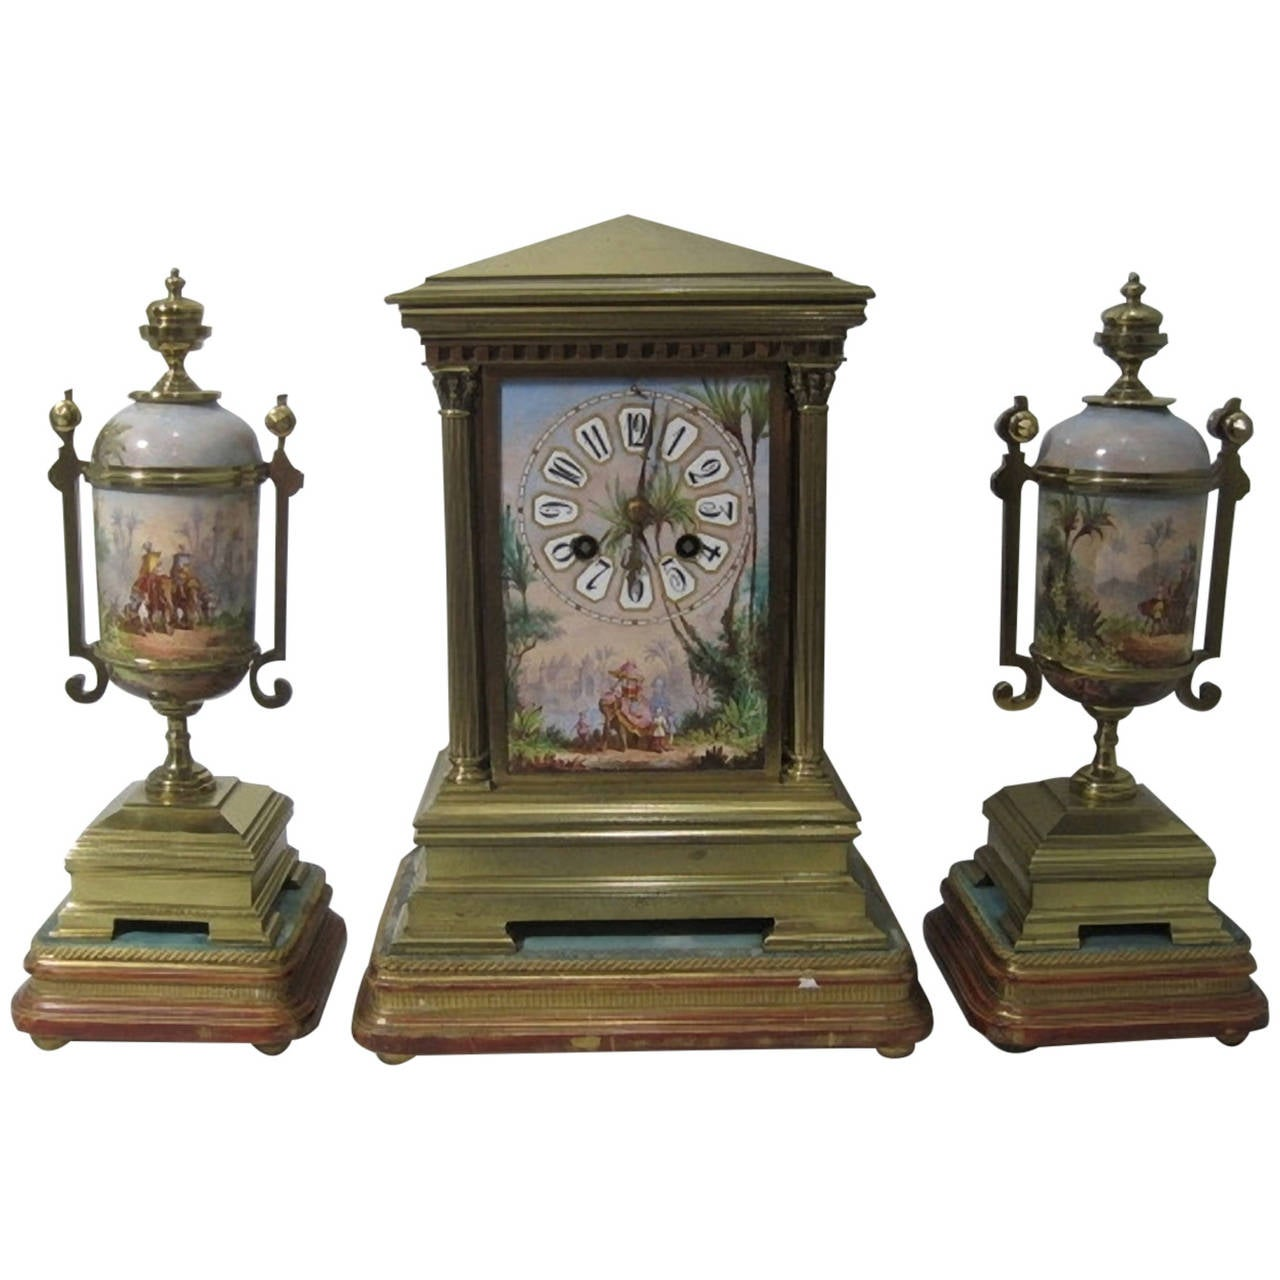 19th Century French Gilt Bronze and Porcelain Mantel Clock and Garniture